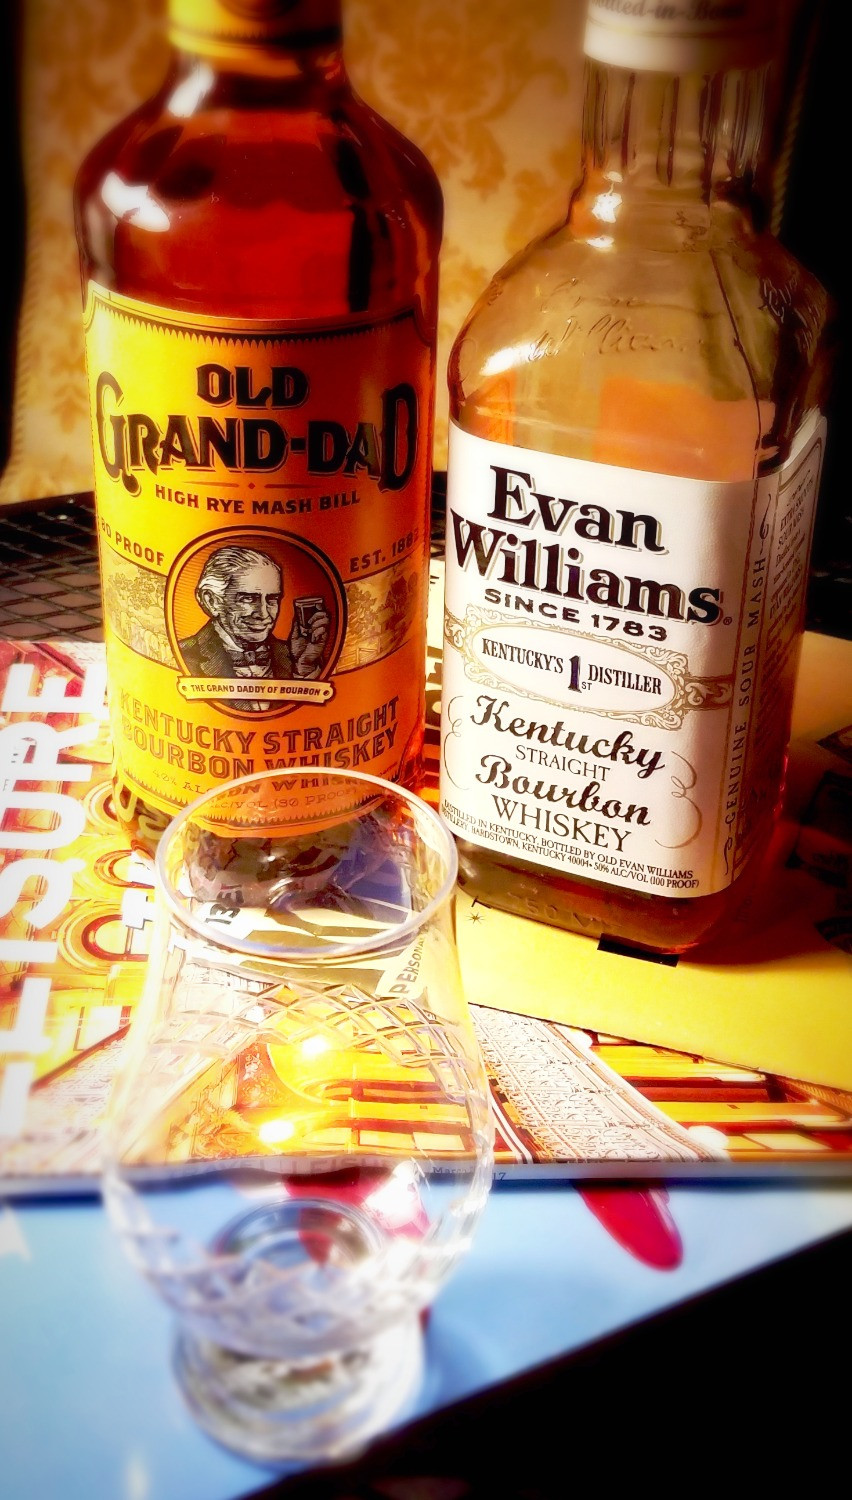 Laurie In Seattle - Old Grandad and Evan Williams Bourbon